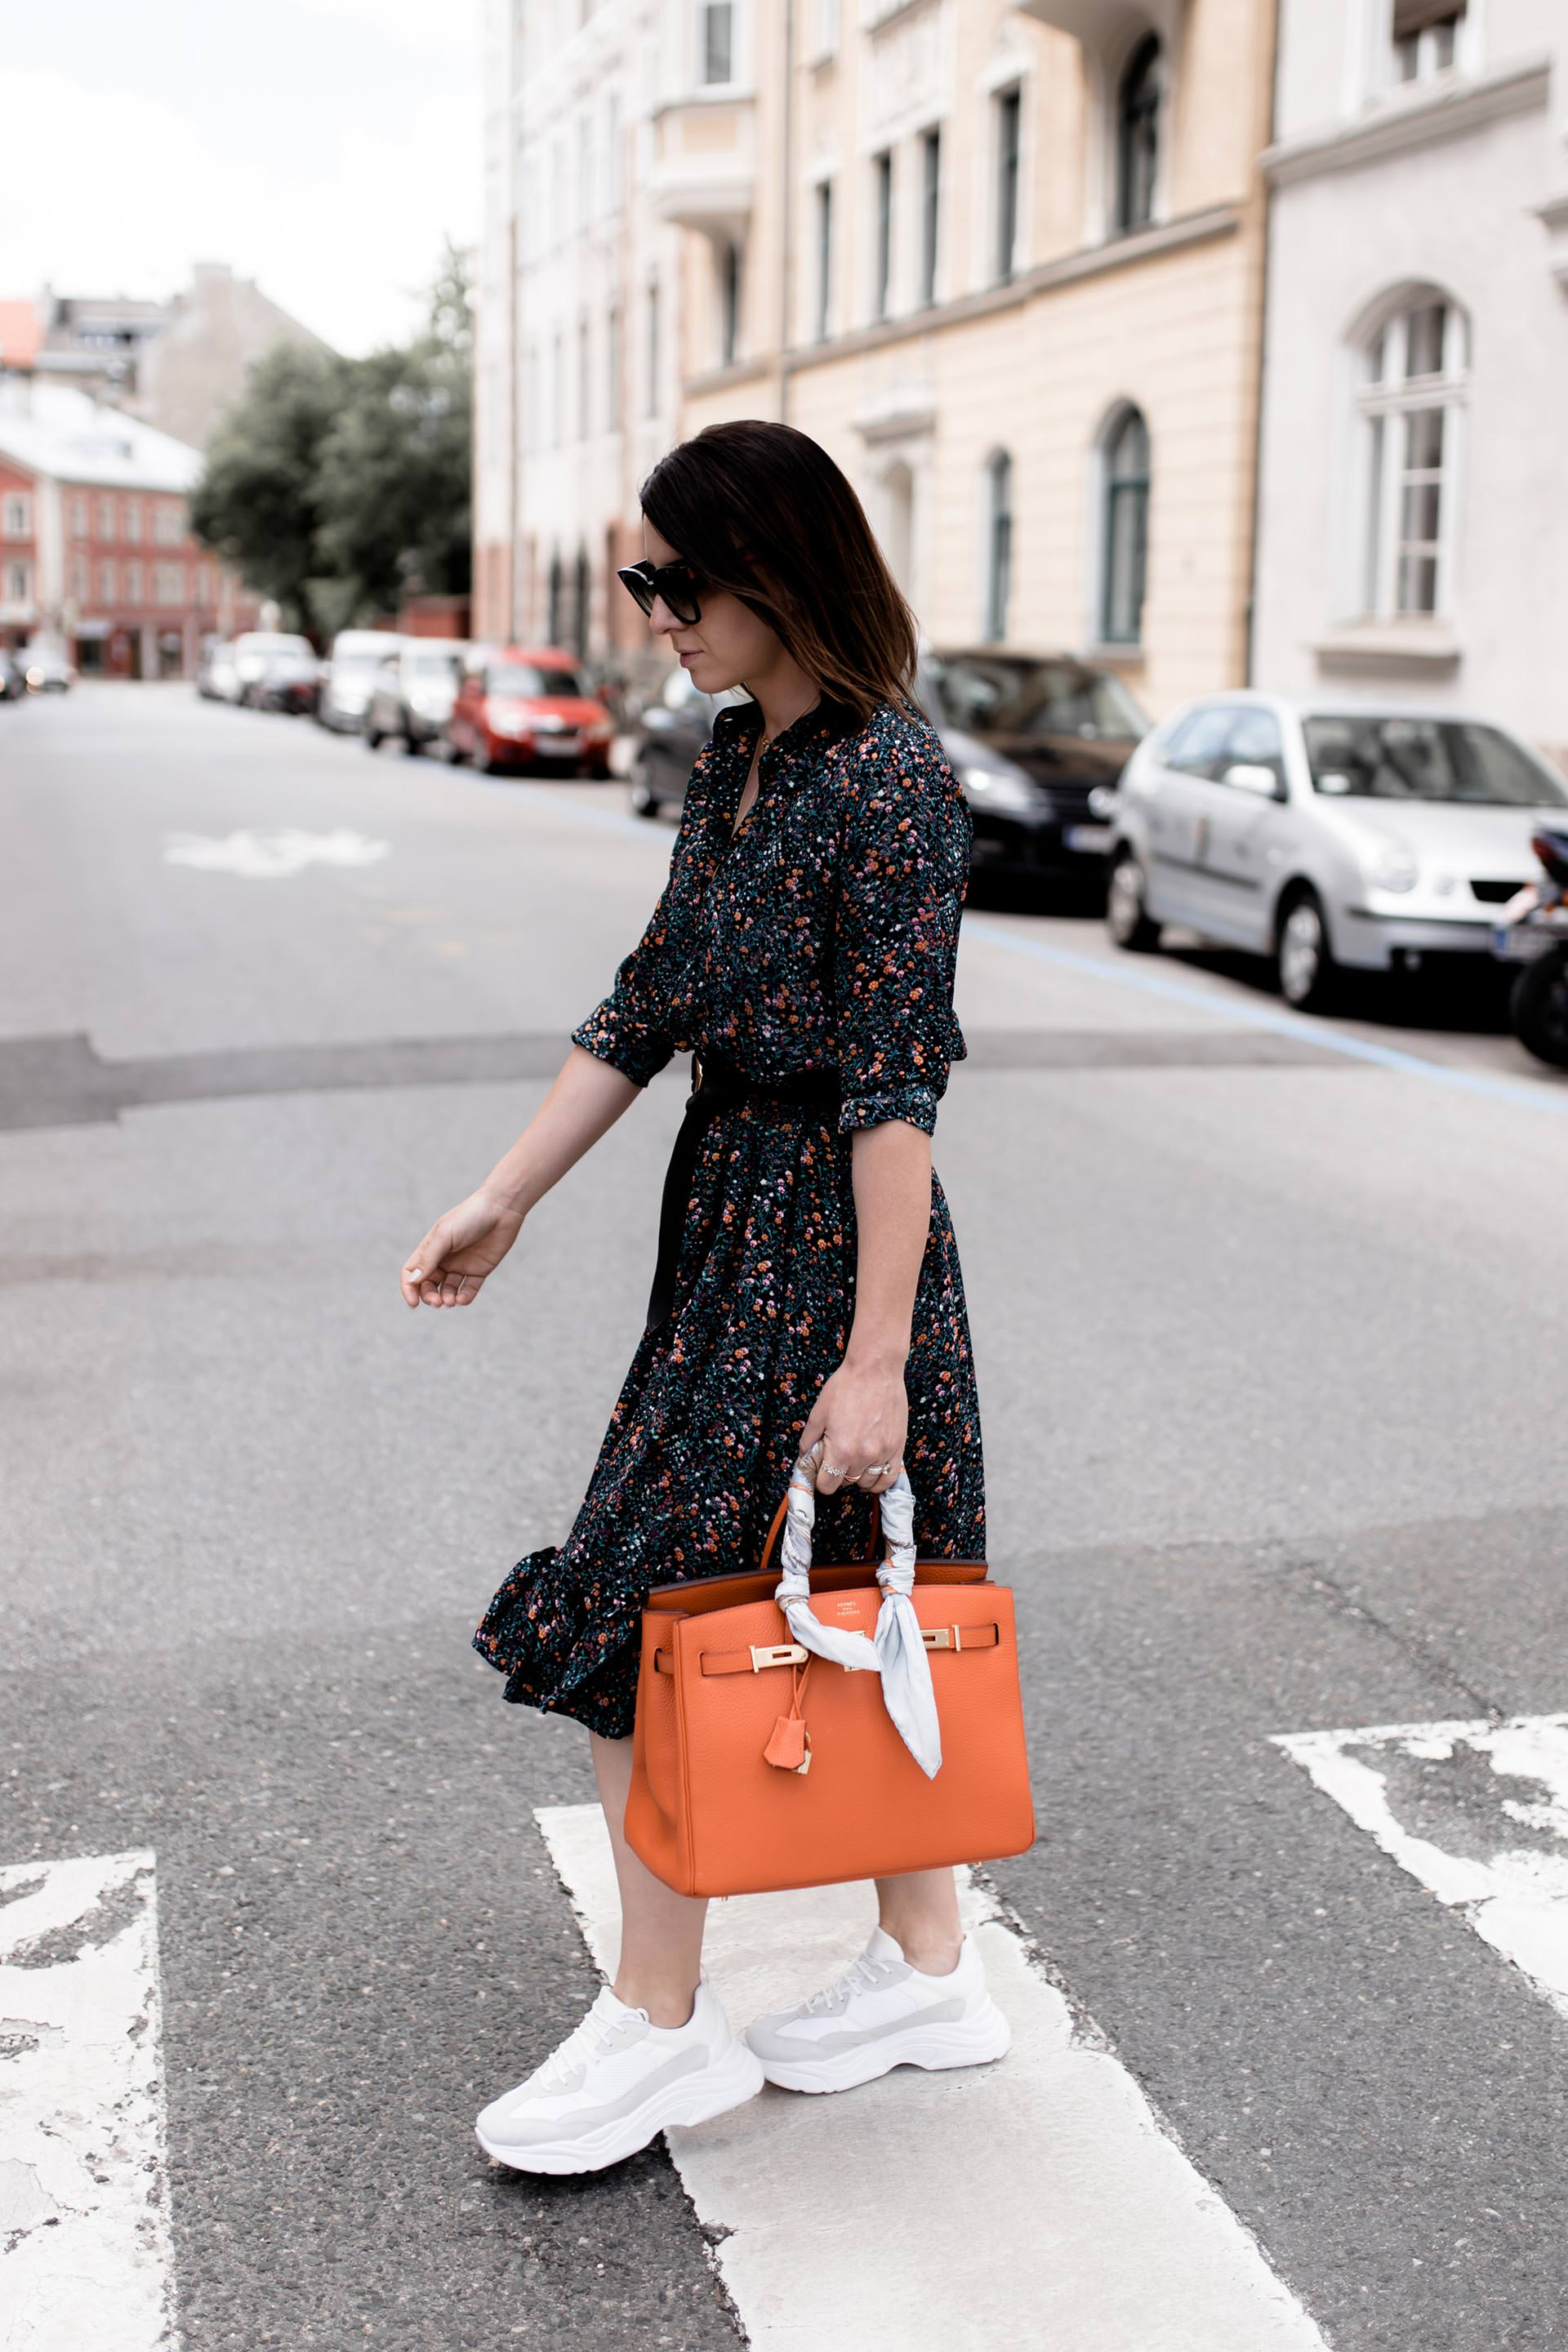 Midikleid und Sneakers kombinieren, Chunky Sneakers zum Kleid, Balenciaga Triple S Look Alike, Hermes Birkin Bag Orange, Streetstyle, Mode Tipps, Sommer Outfit mit Kleid, Midikleid stylen, Fashion Blogger, www.whoismocca.com, #streetstyle #hermes #balenciagatriples #chunkysneakers #mididress #summeroutfit #howtostyle #fashiontrends